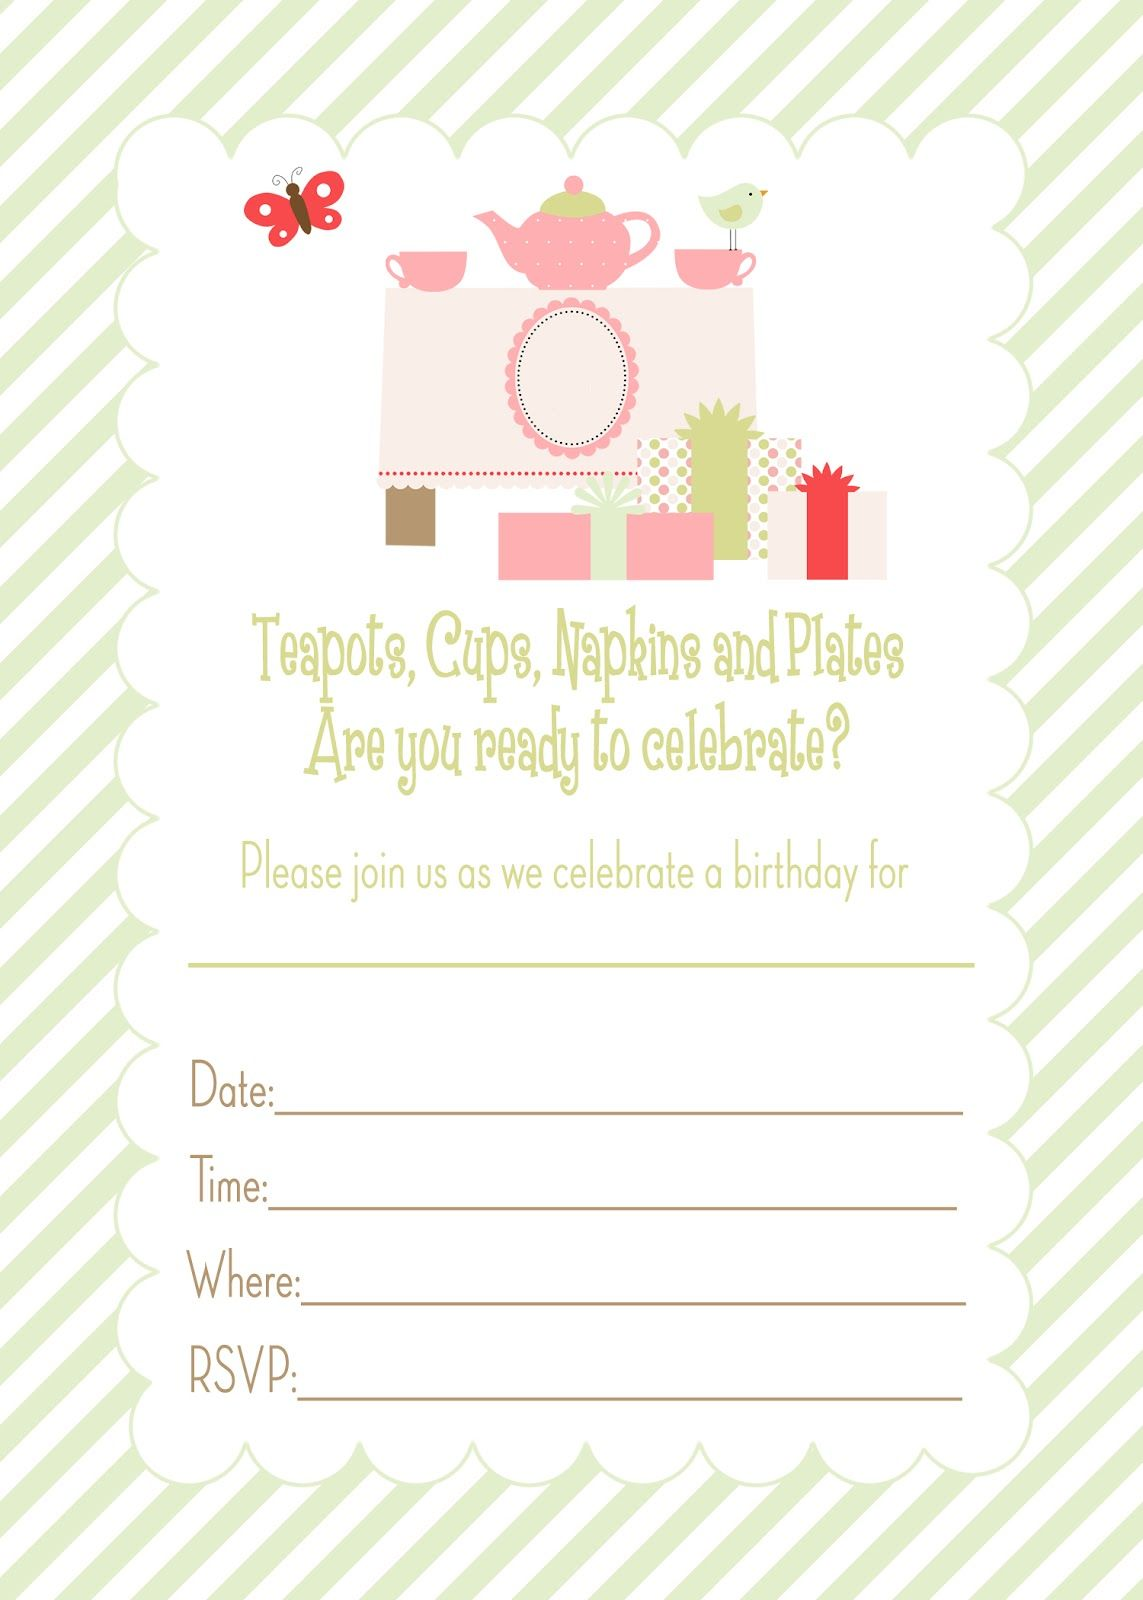 picture regarding Free Printable Tea Party Invitations titled No cost Printable Tea Social gathering Birthday invitation Printables